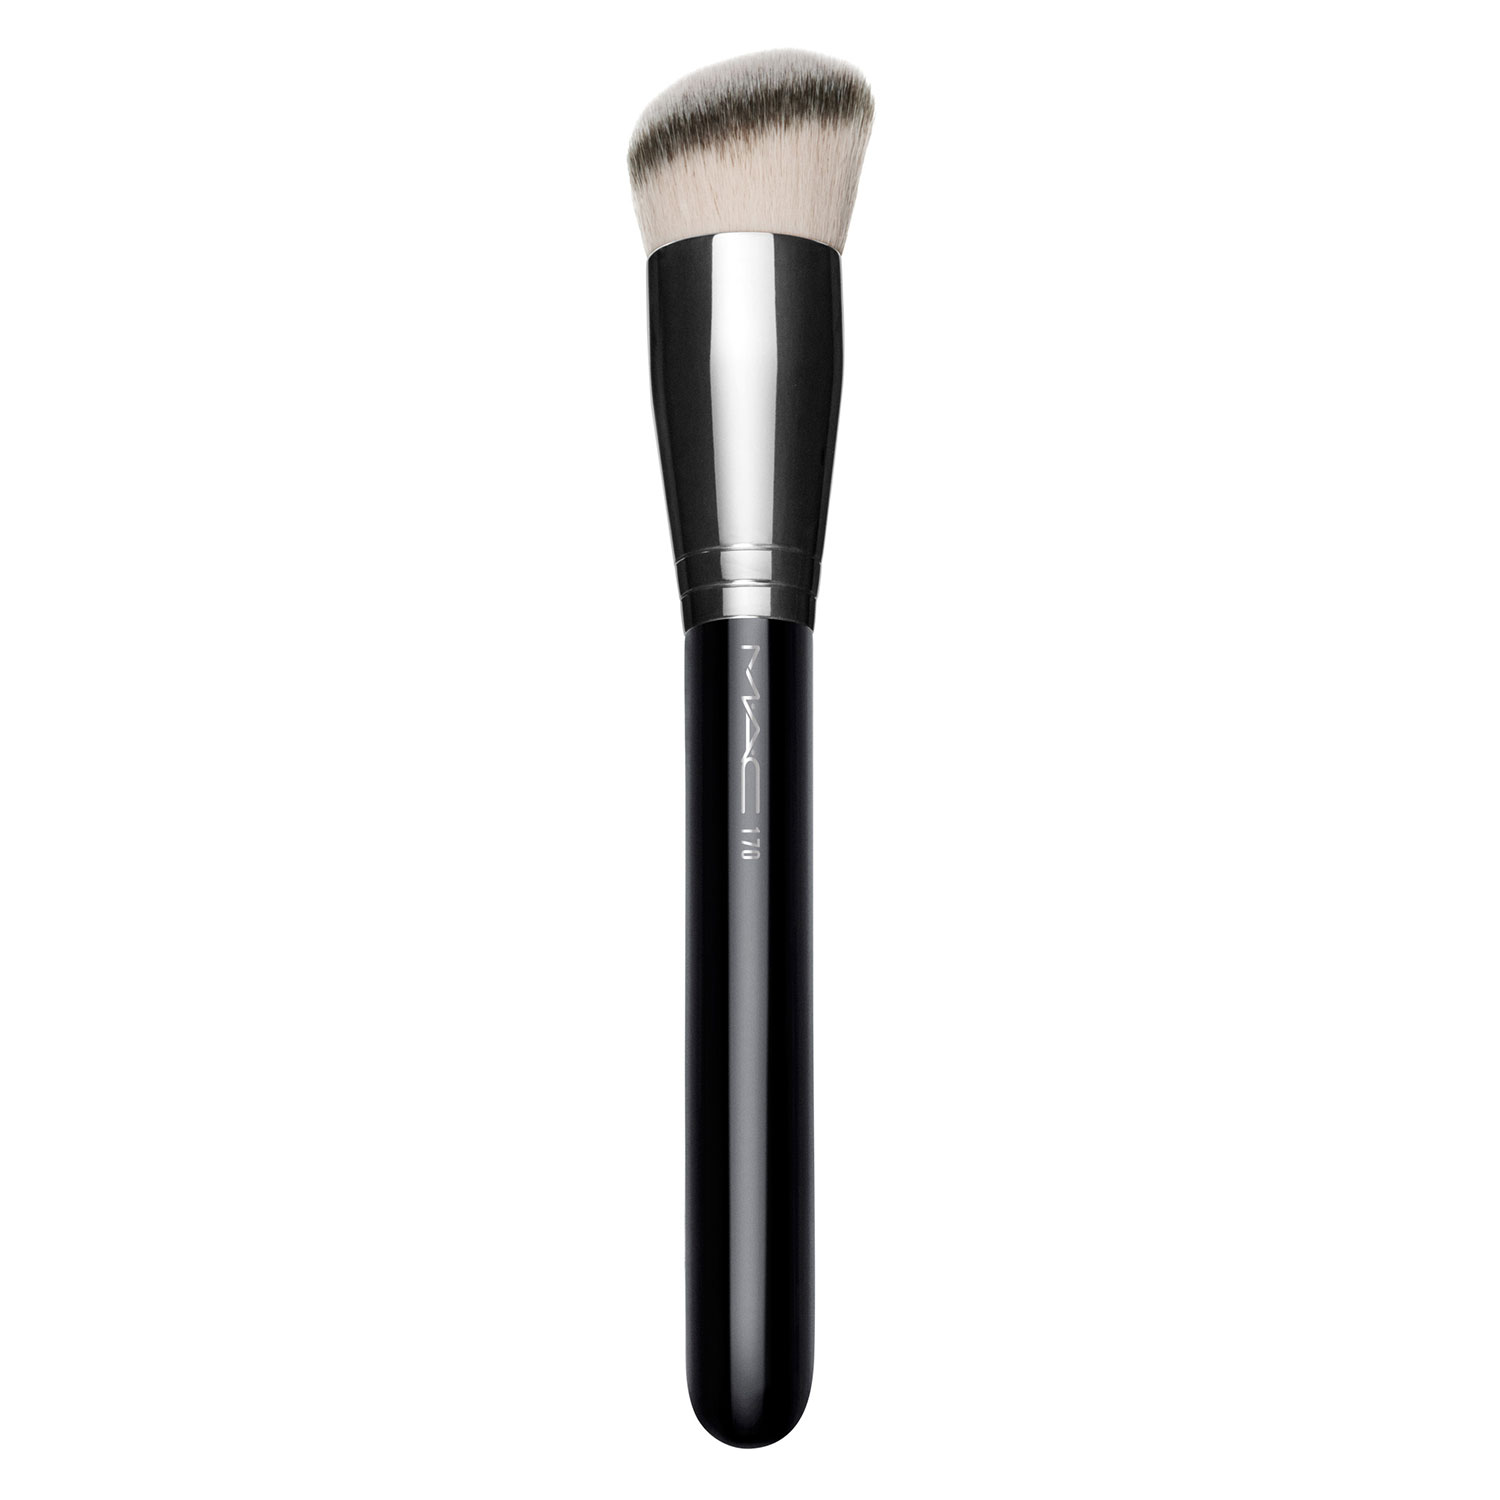 M·A·C Tools - Synthetic Rounded Slant Brush 170